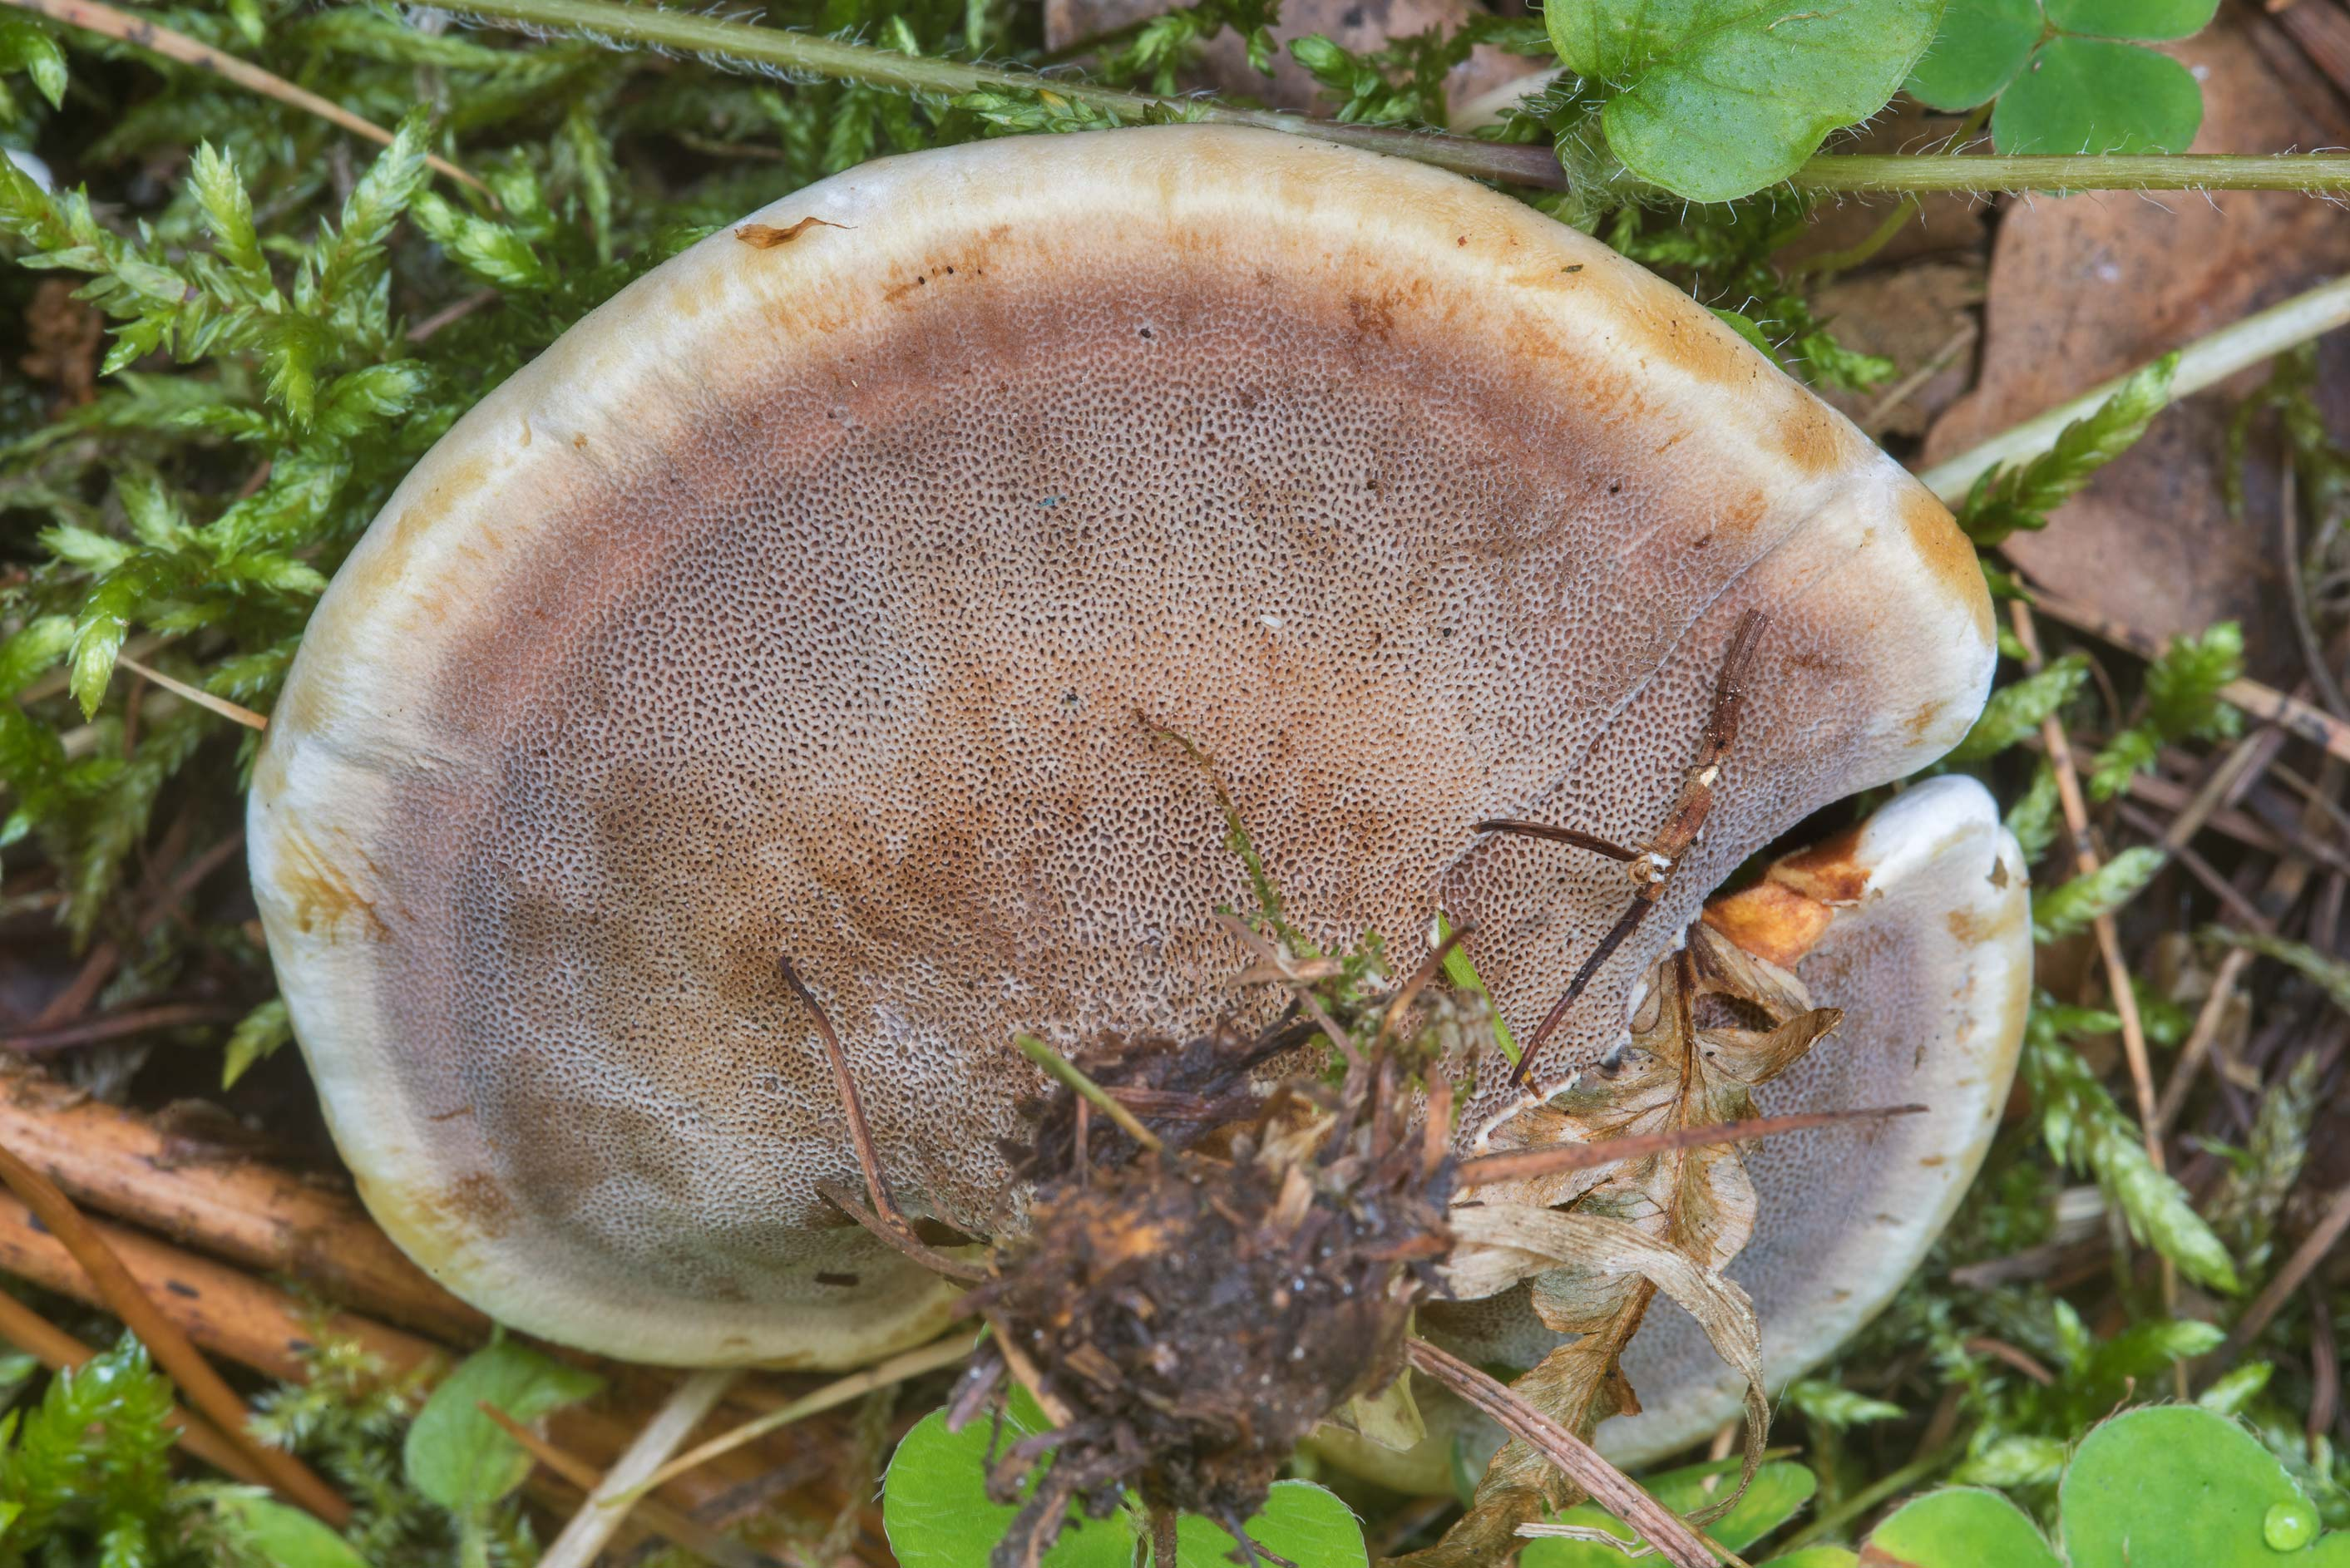 Pores of a woolly velvet polypore mushroom (Onnia...north-west from St.Petersburg. Russia